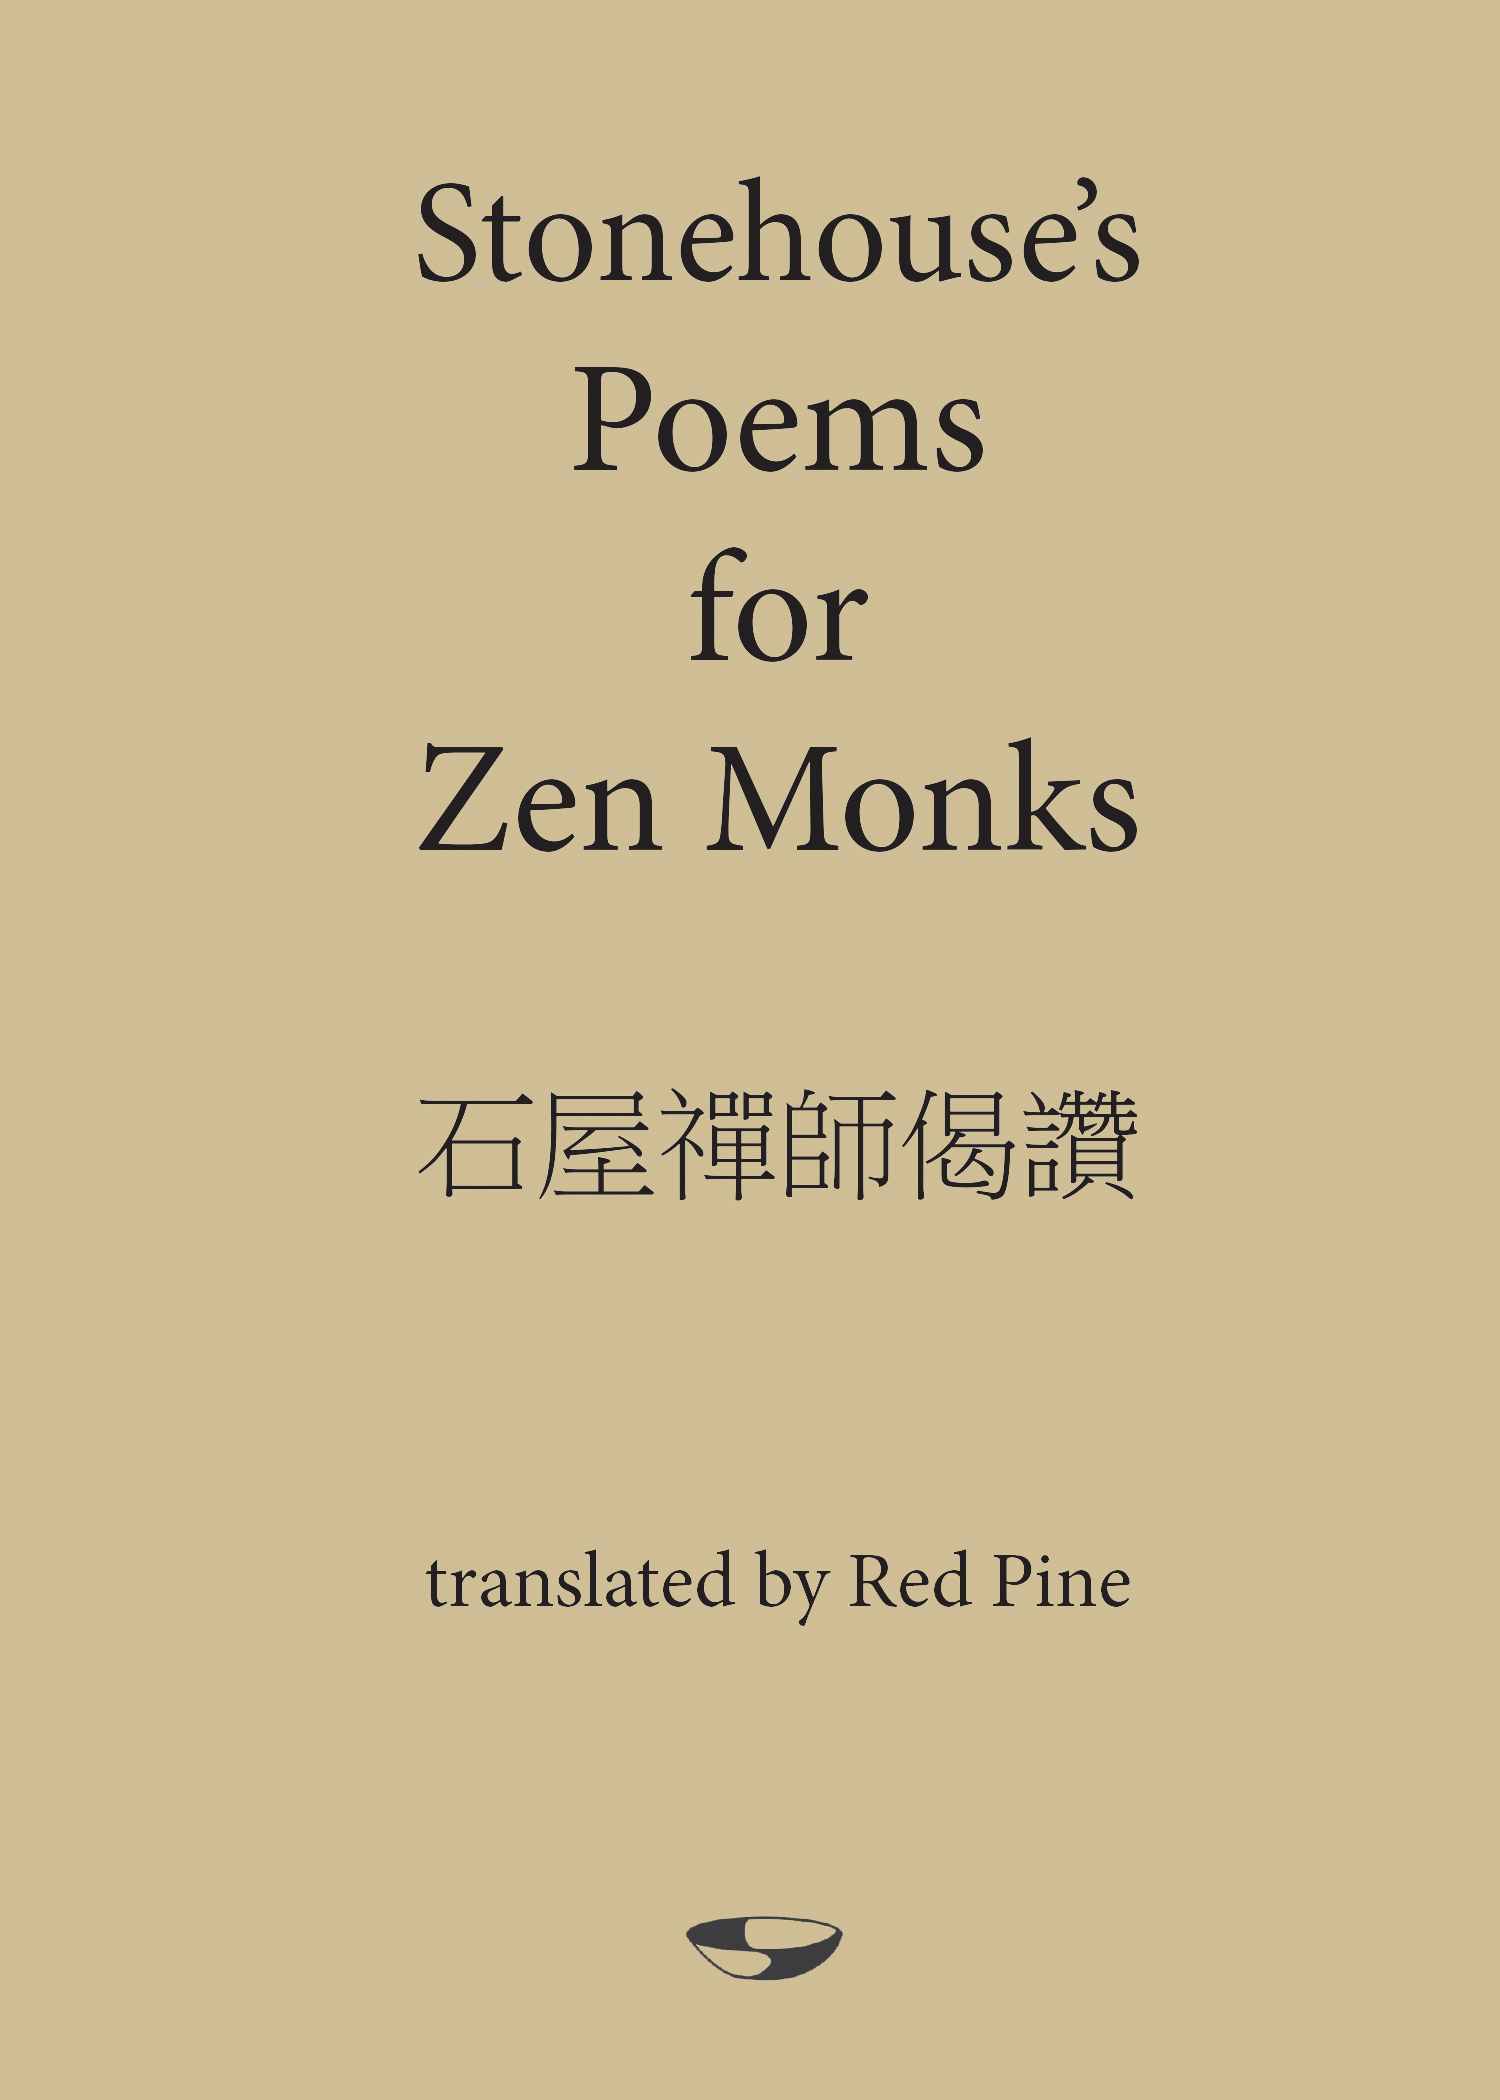 Stonehouse's Poems for Zen Monks